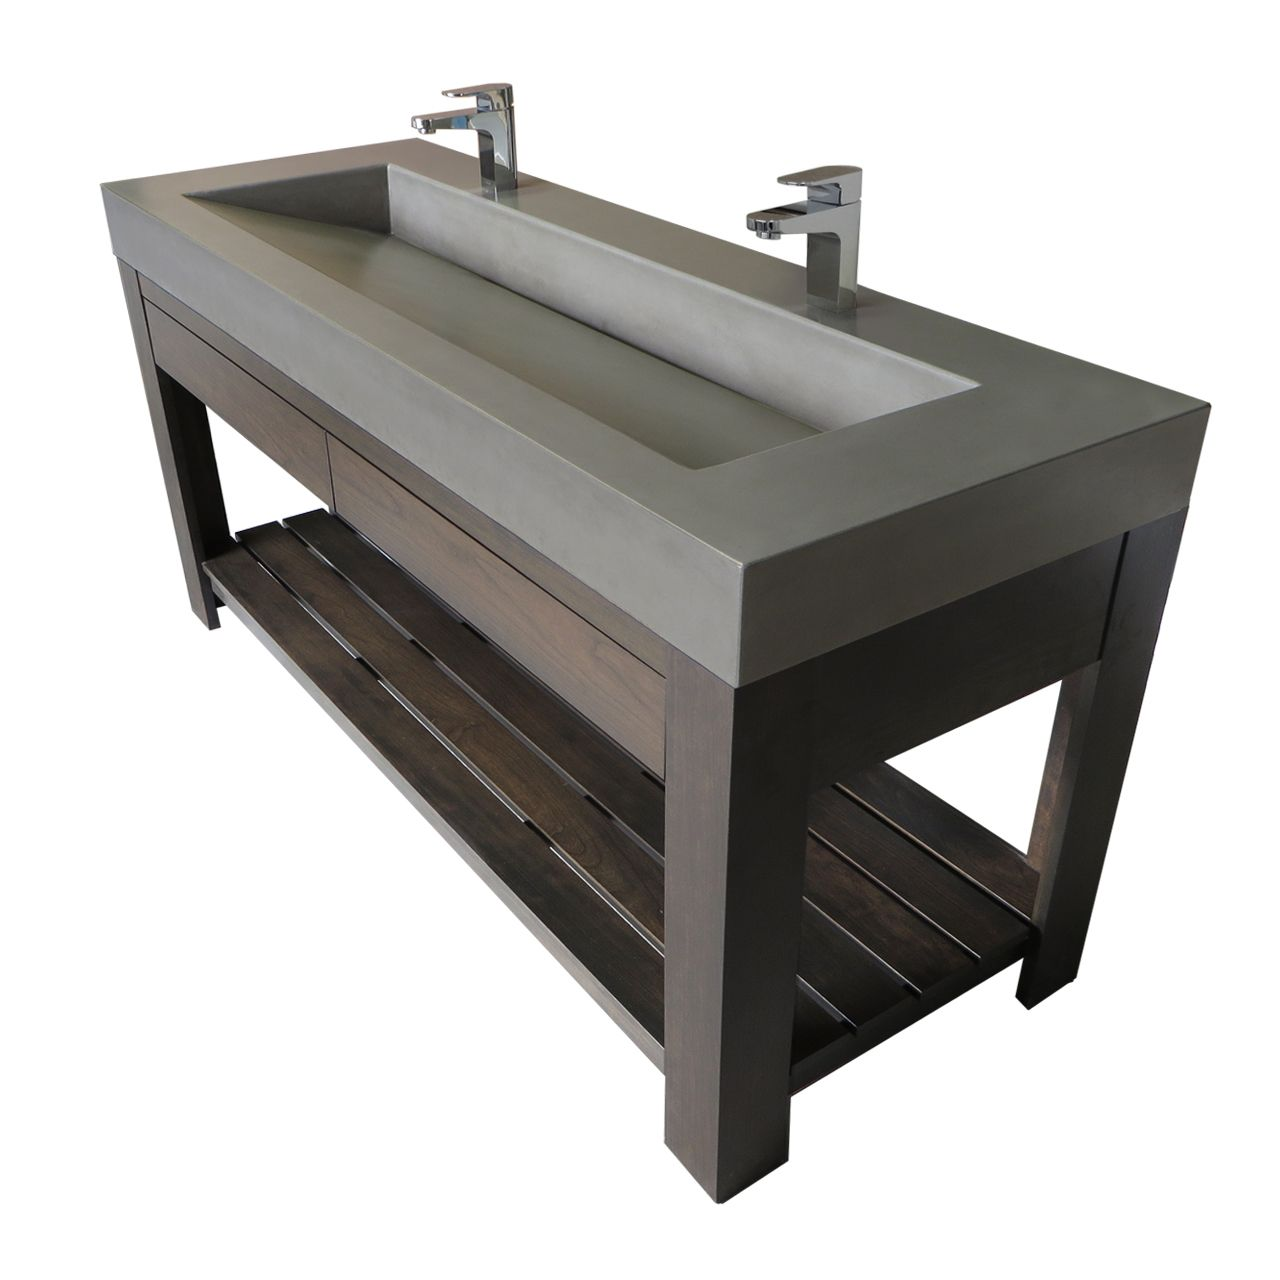 "Trueform 60""Lavare Vallum Concrete Bathroom Vanity Sink"